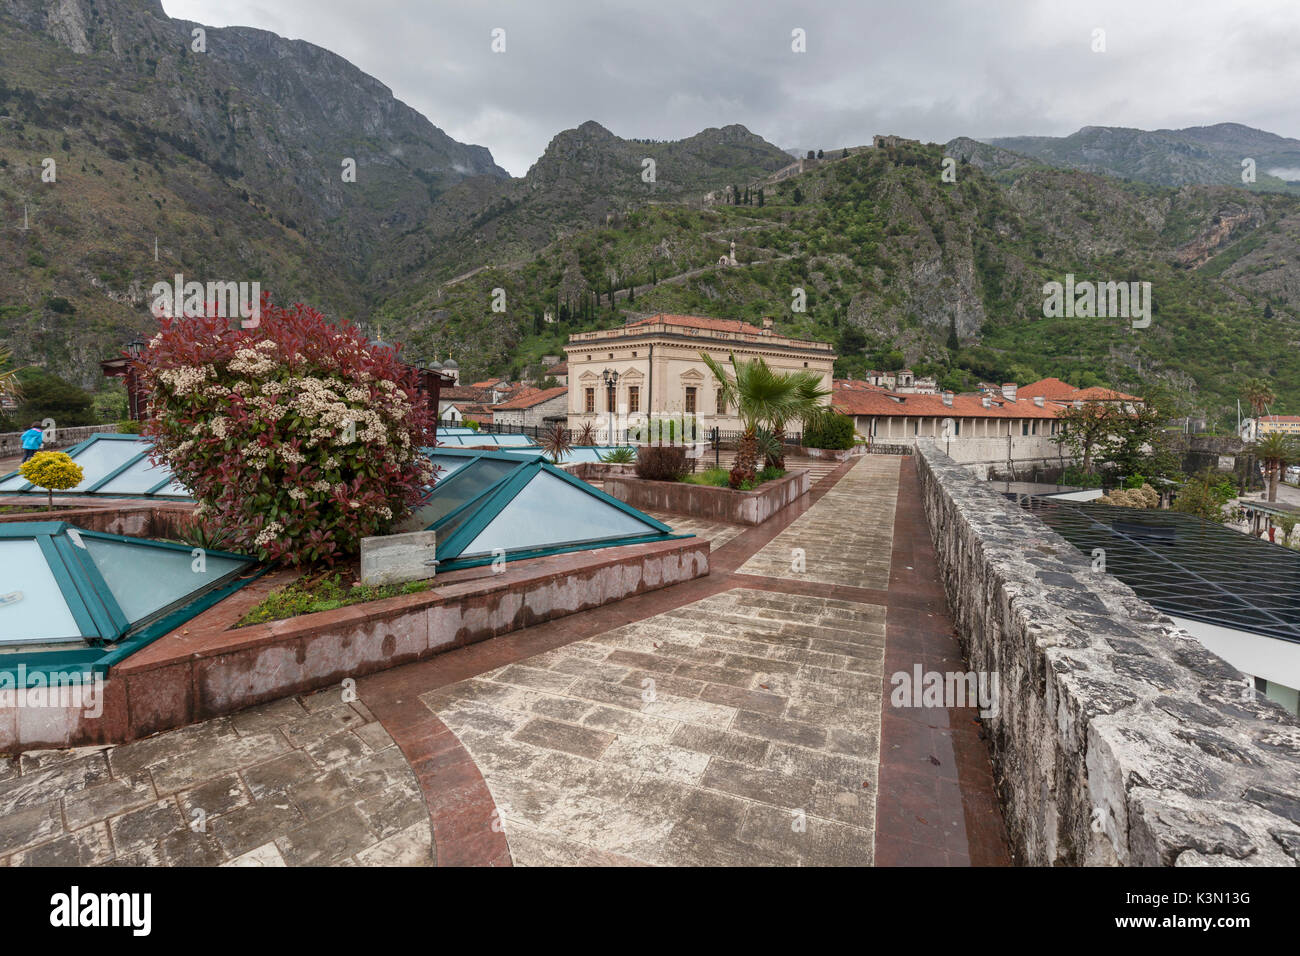 Kotor, view to the fortifications from the walls of the old city. Montenegro - Stock Image